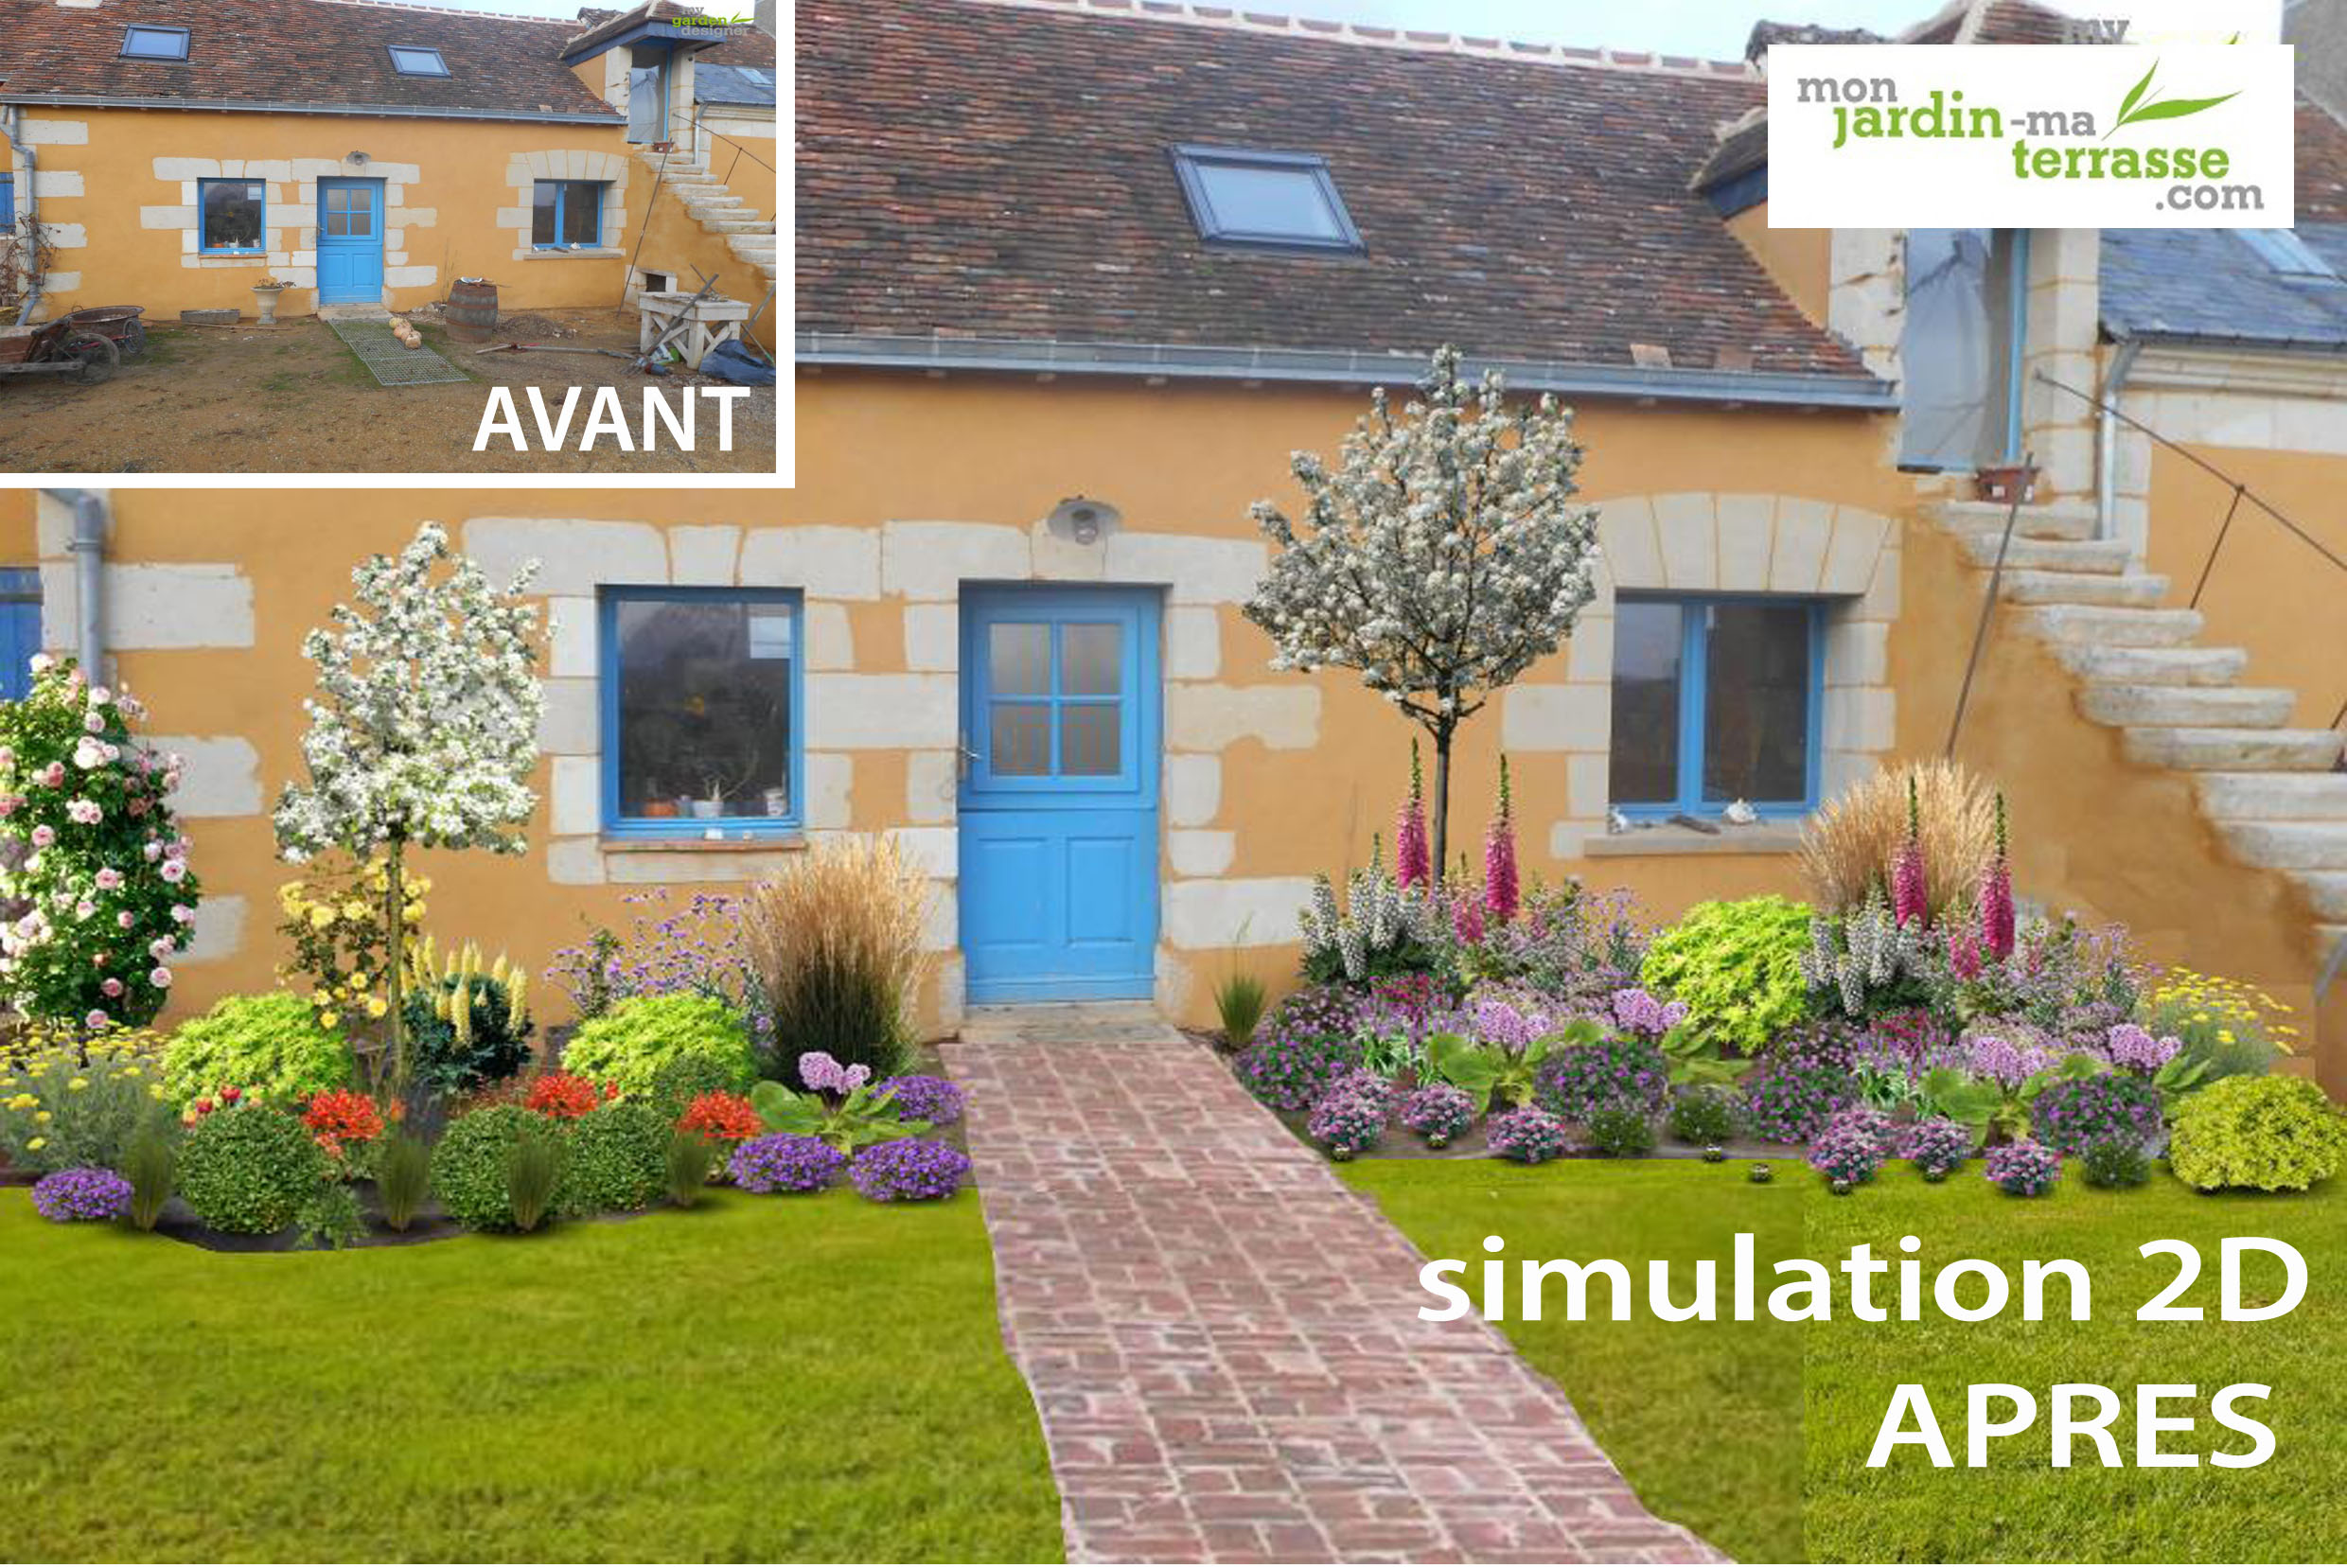 Am nager un jardin style cottage anglais monjardin for Amenager un jardin